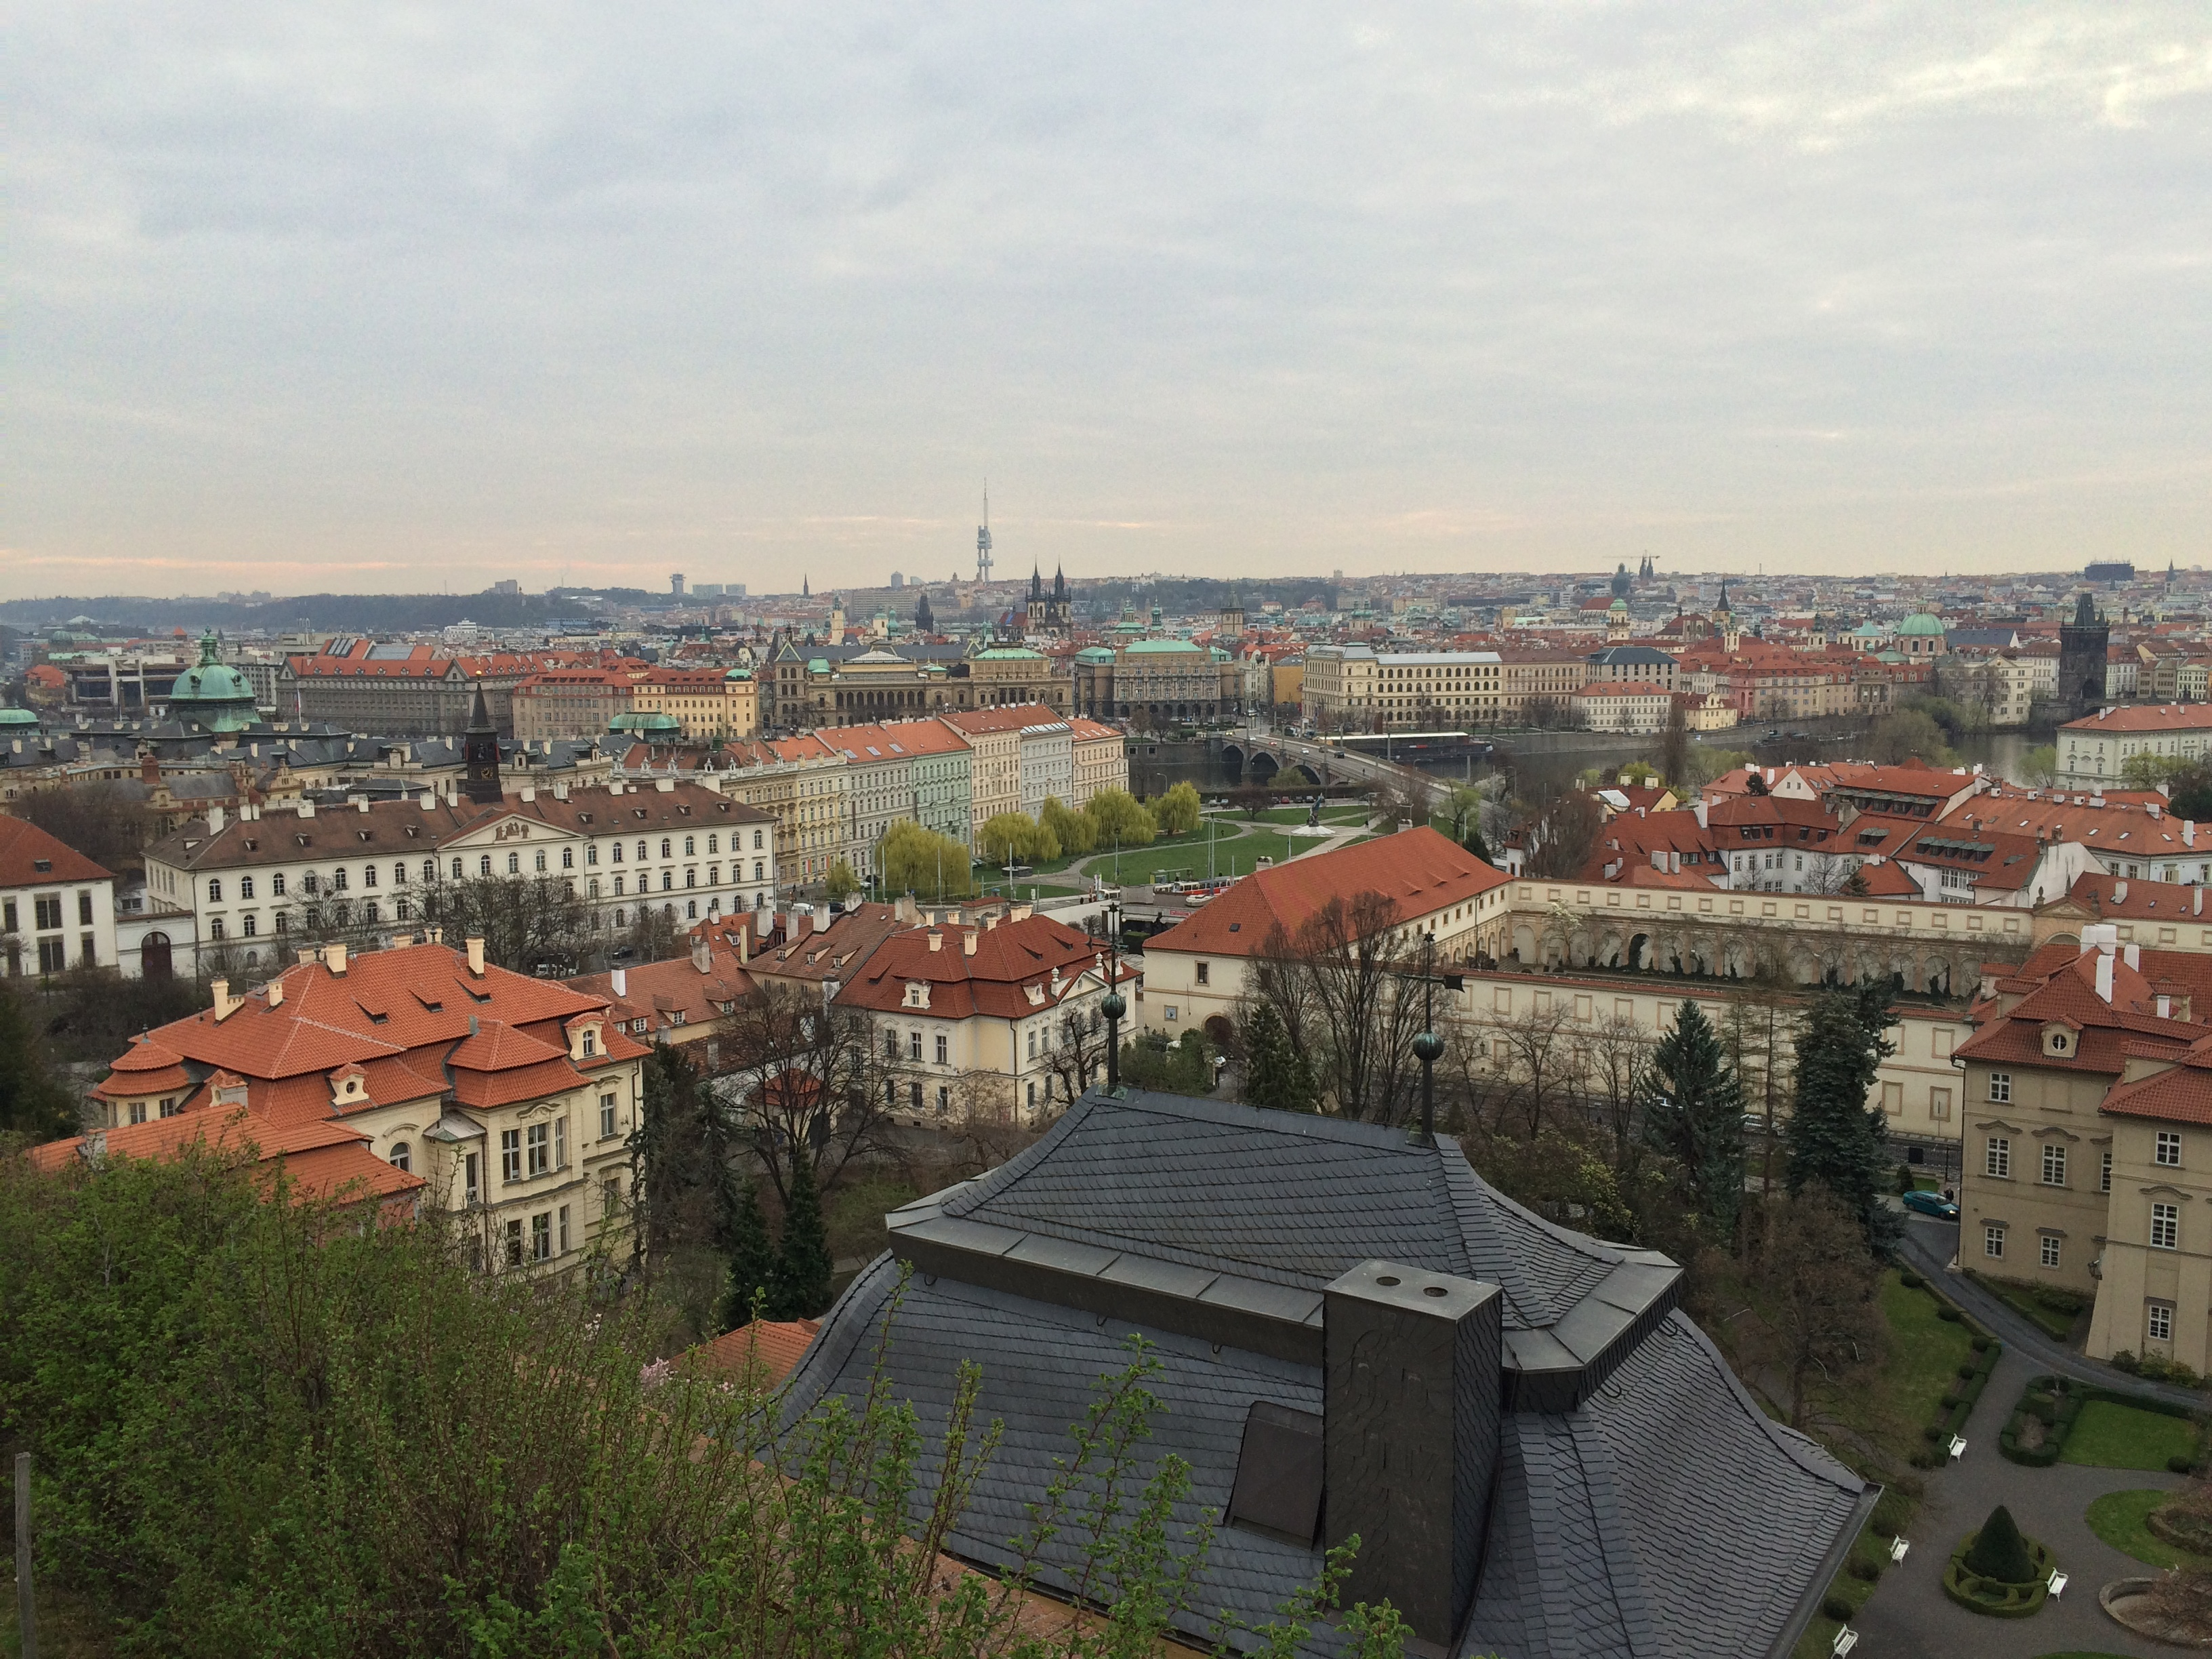 Eastern Prague, as seen from the hills around Prague Castle